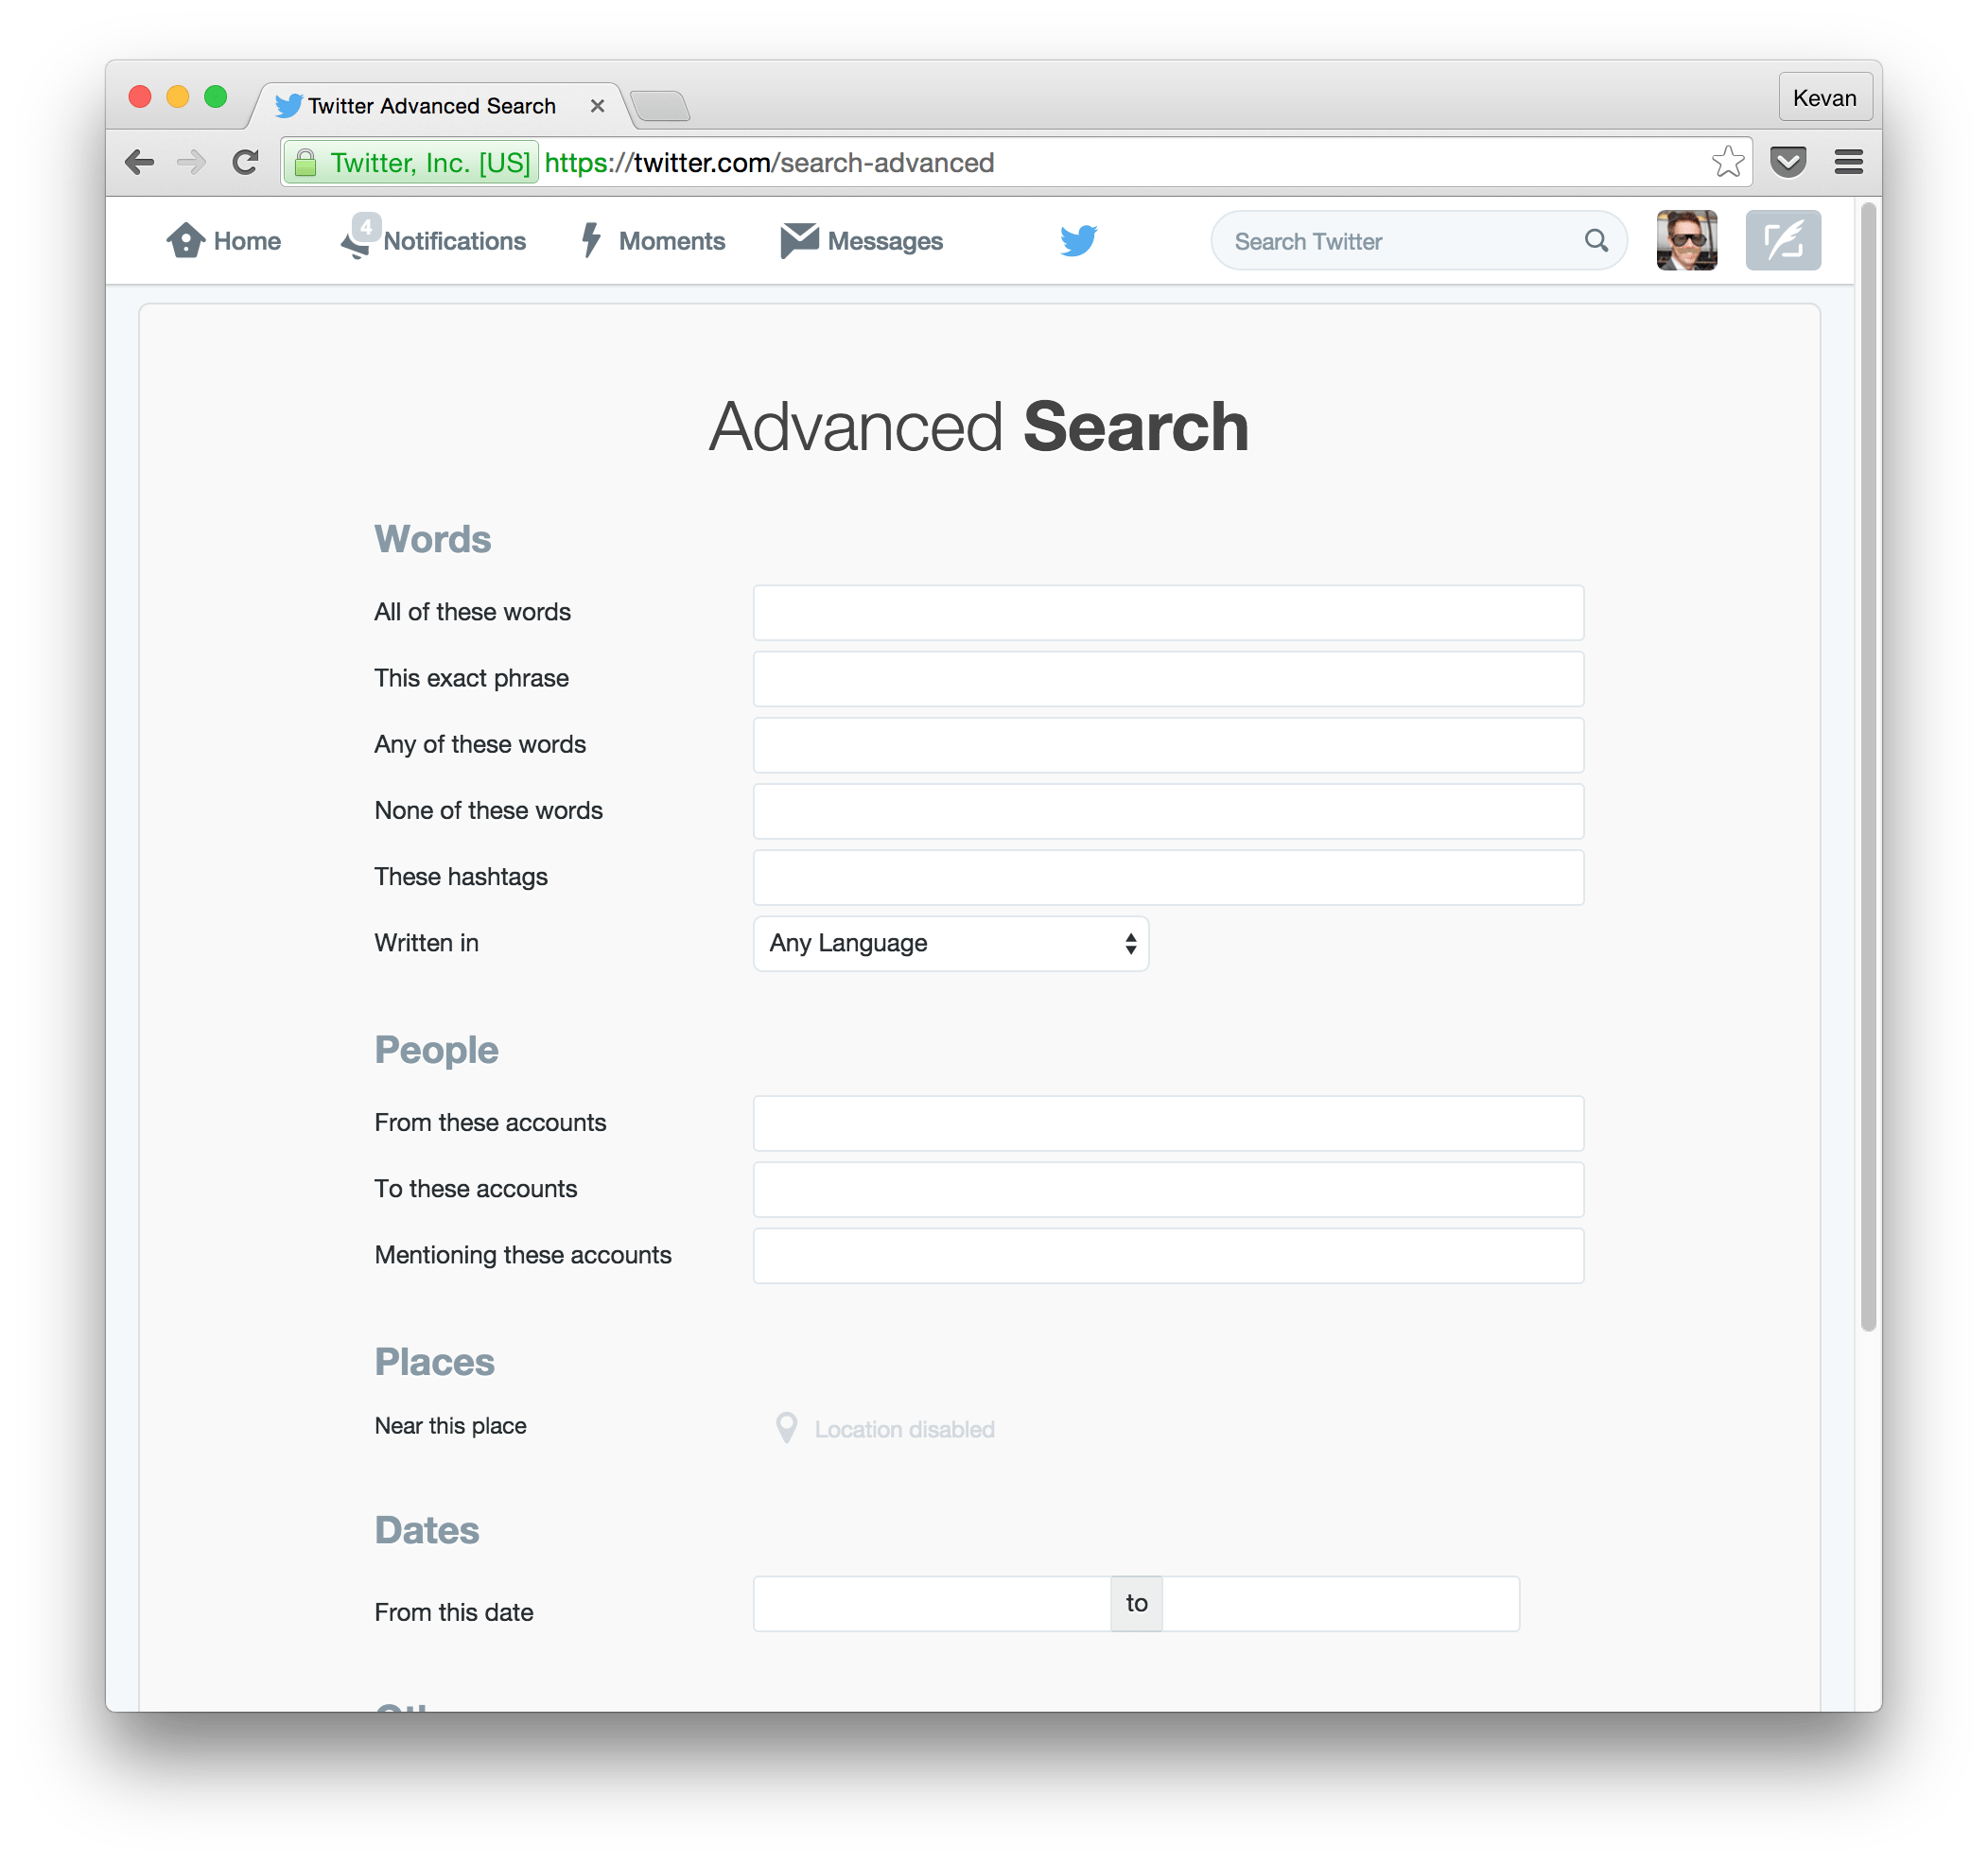 Twitter Advanced Search A Complete Guide to Searching Twitter